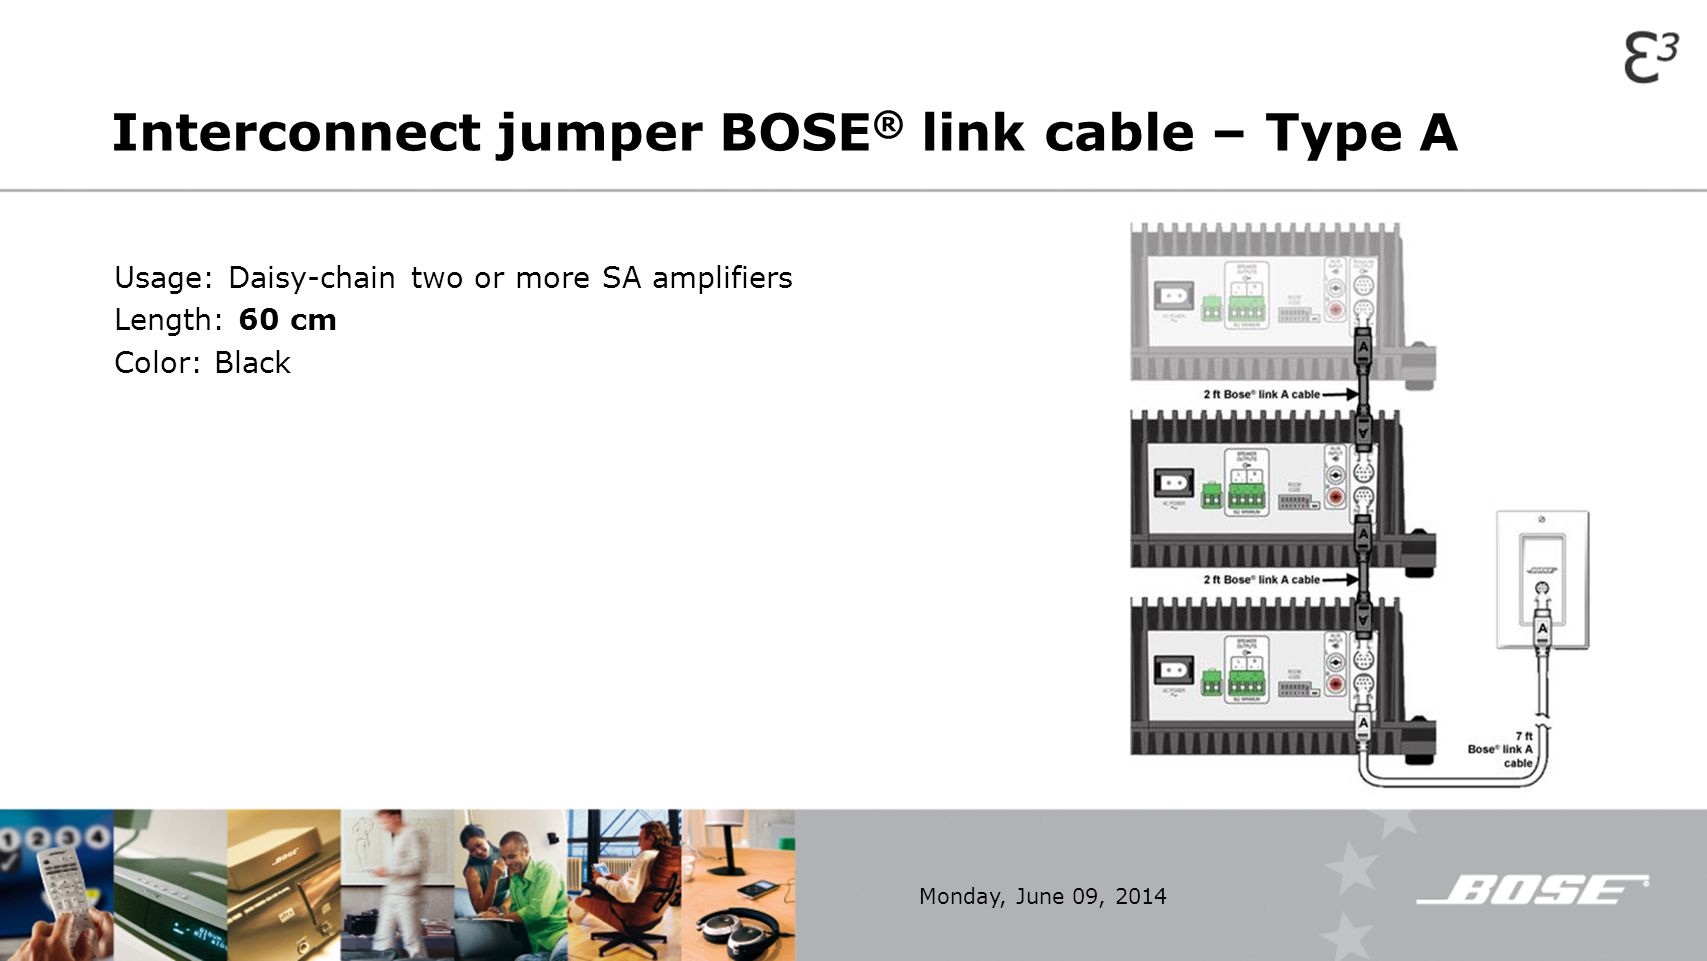 Interconnect jumper BOSE® link cable – Type A